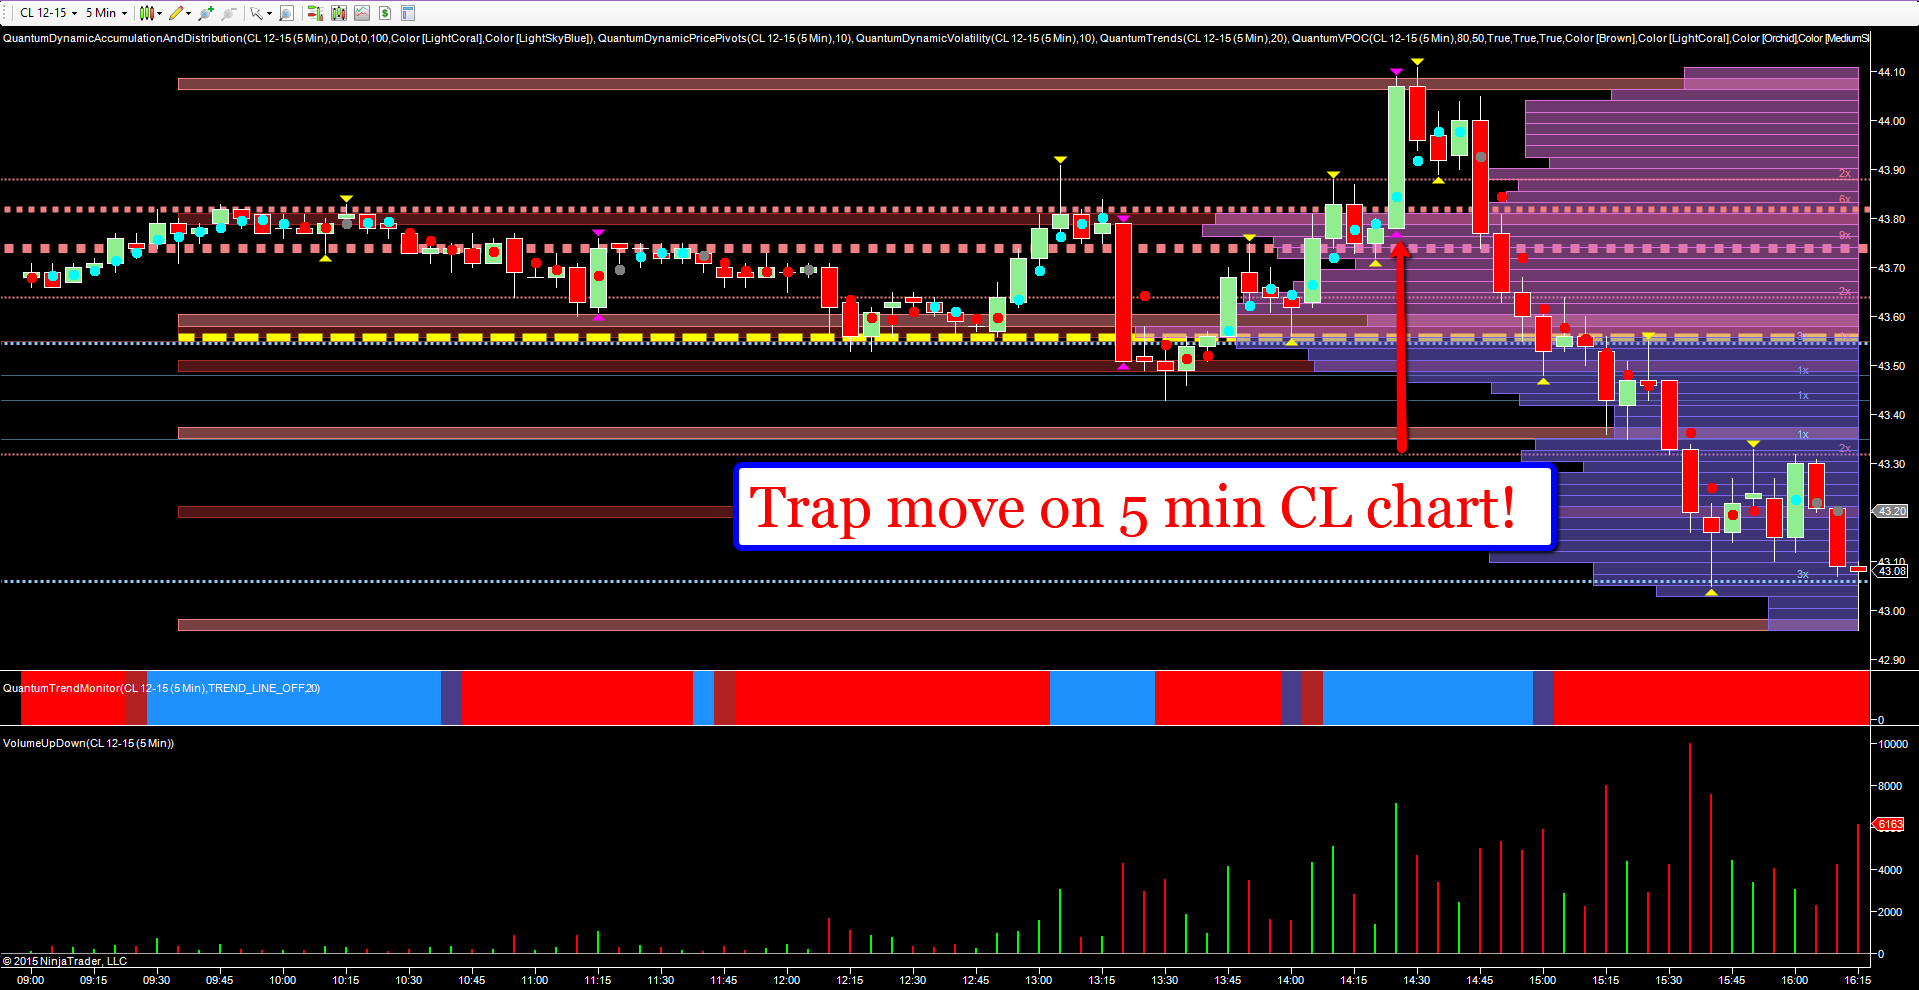 Trap_move_on_oil_5_min_chart